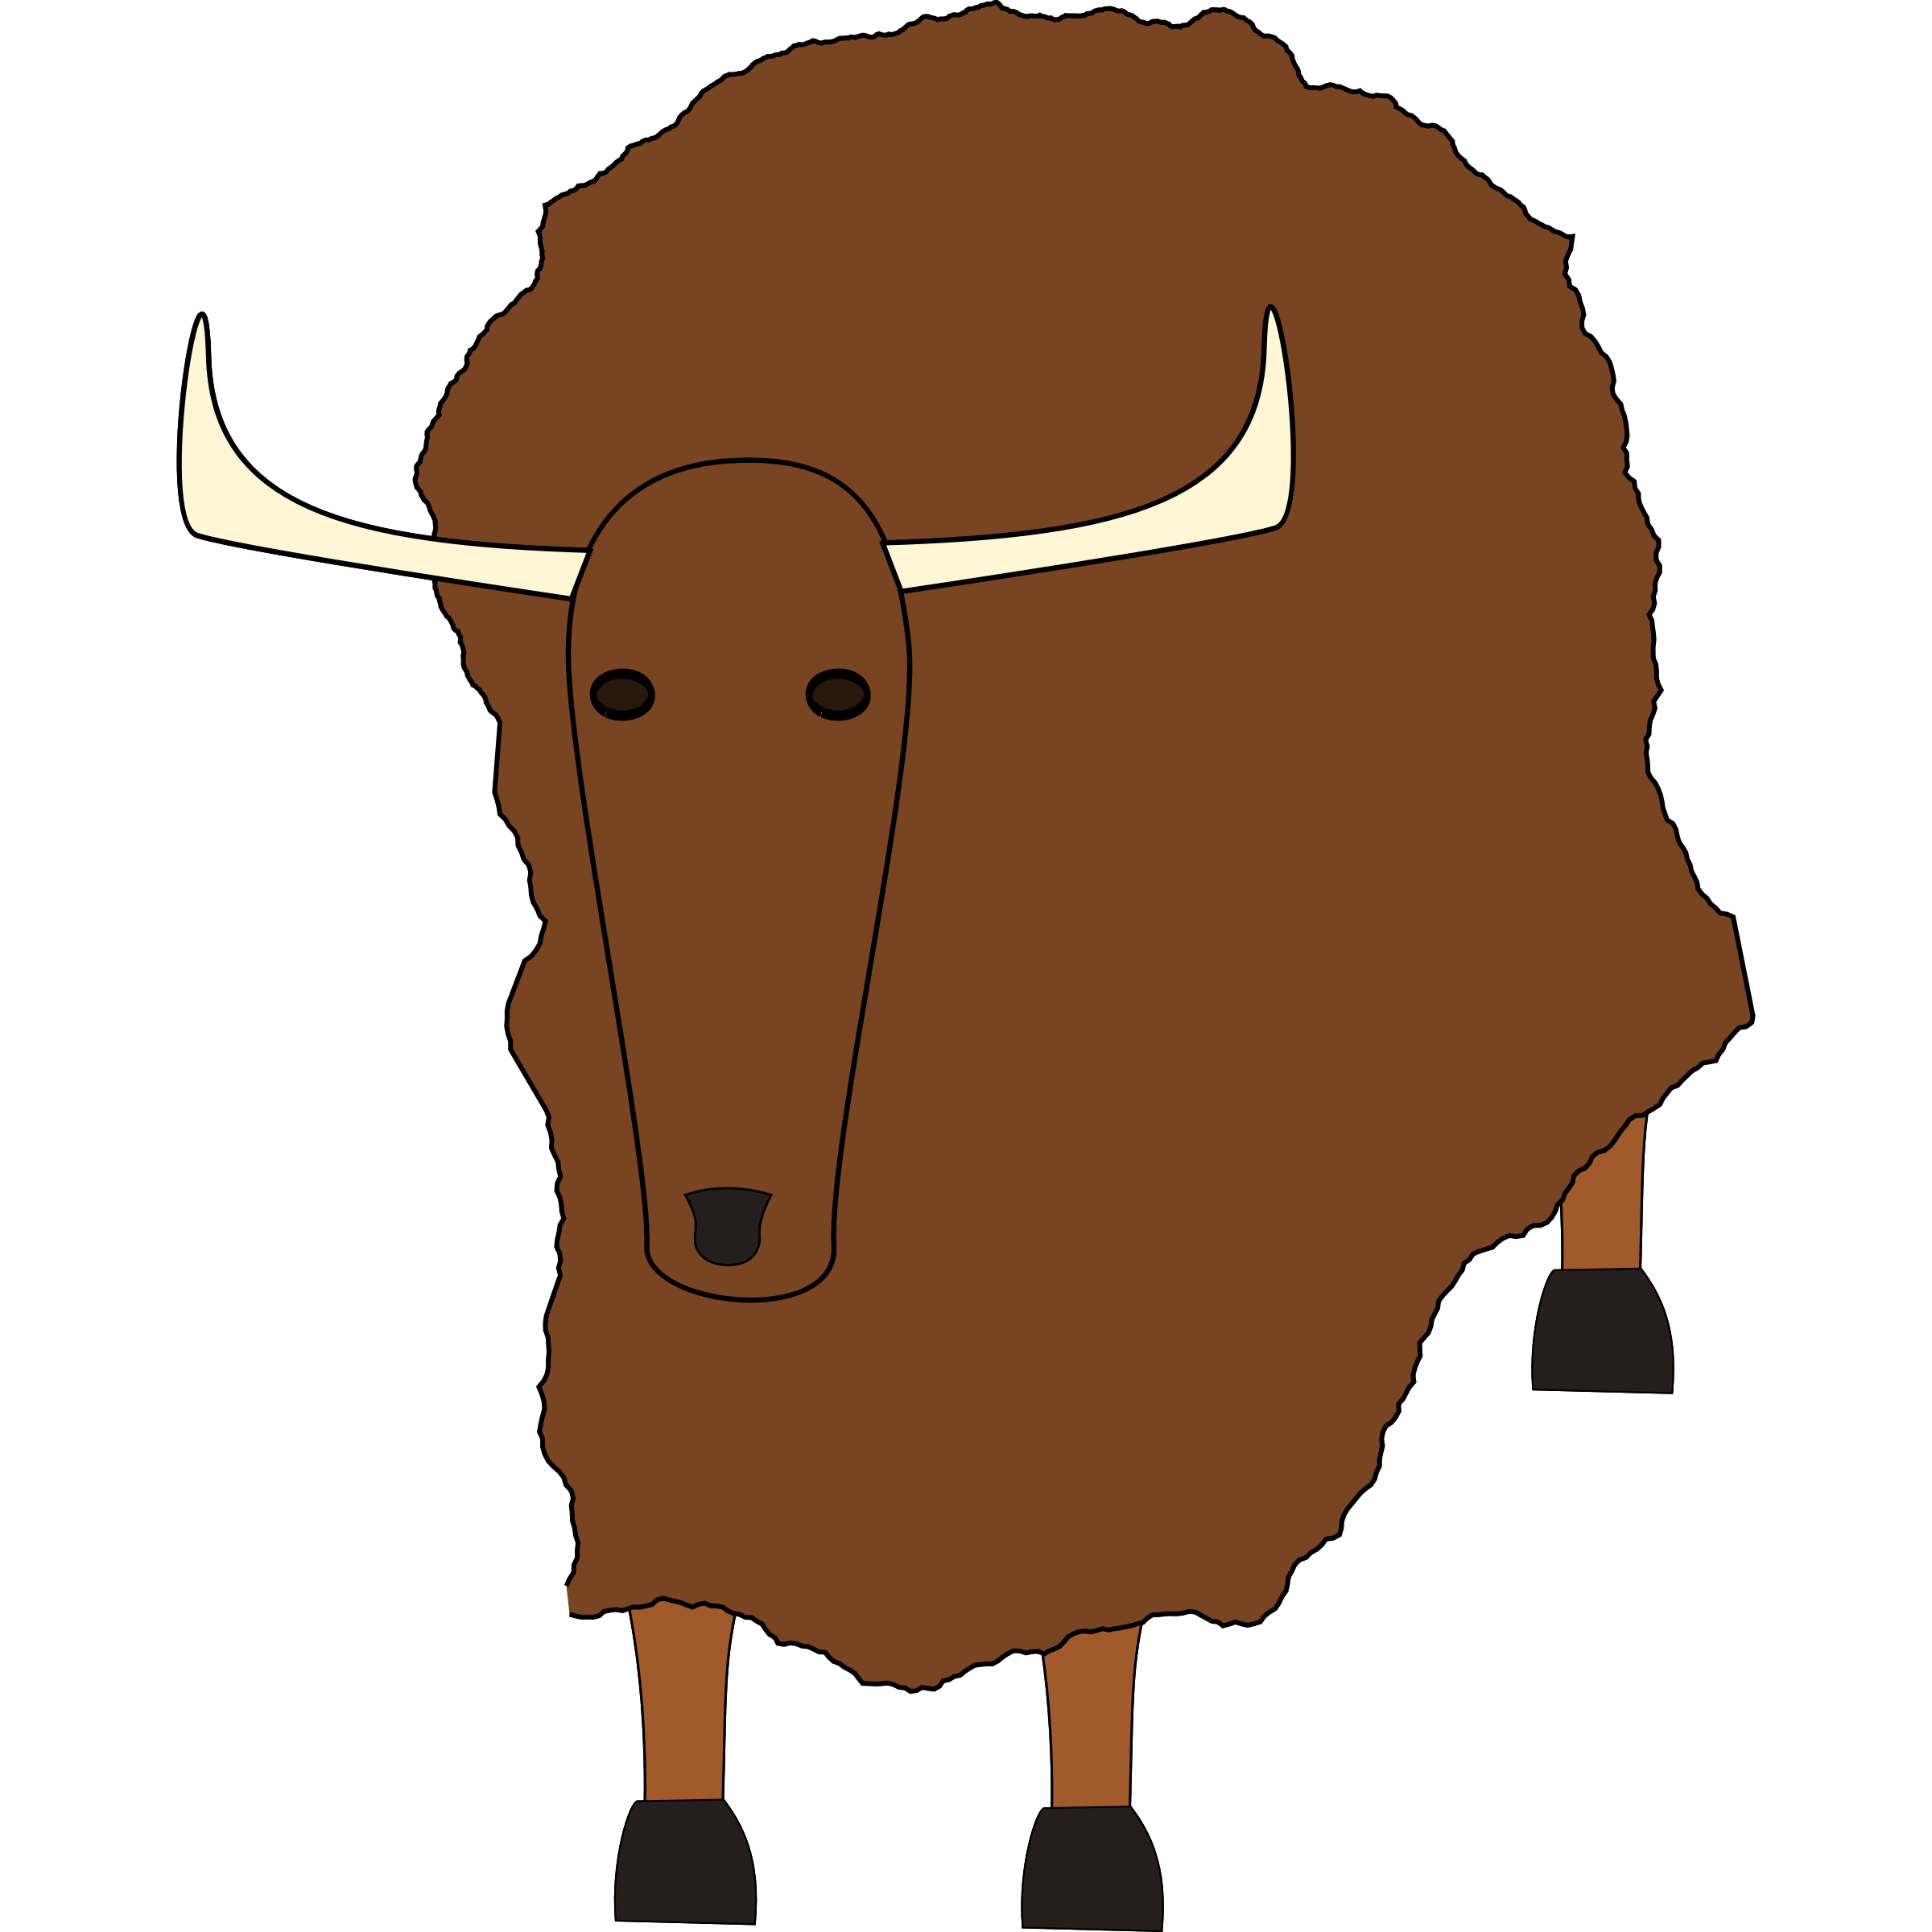 Yak clipart trainer. Ox musk free on